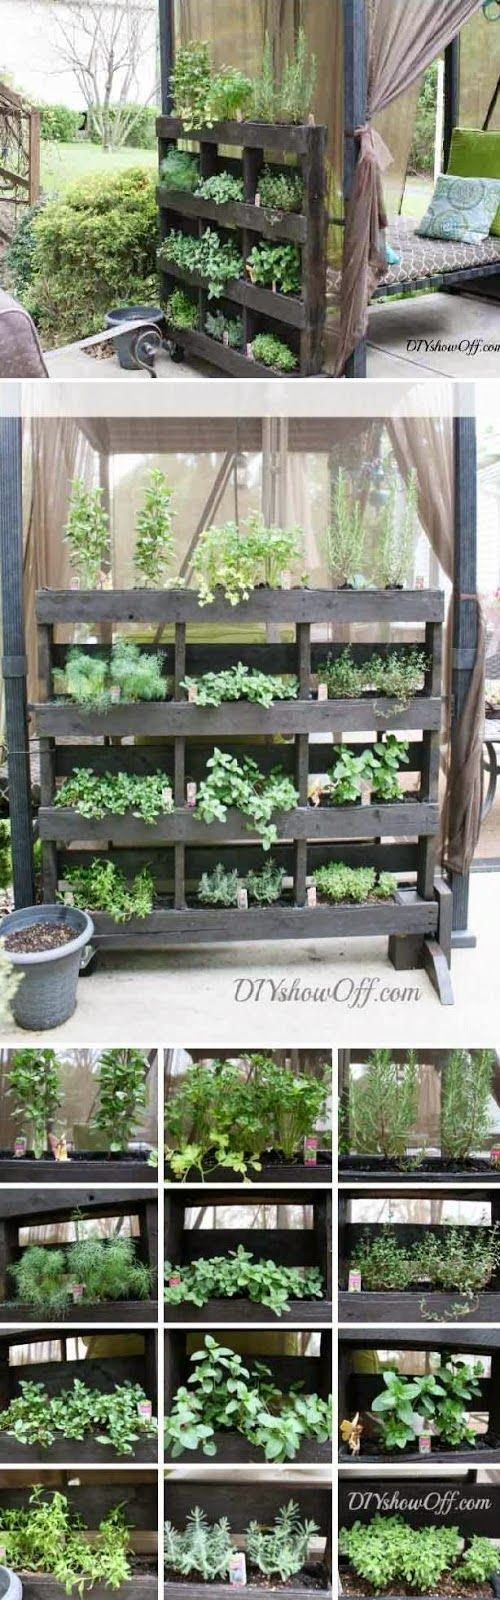 Do double sided with 2 pallets together and use it as a space separator